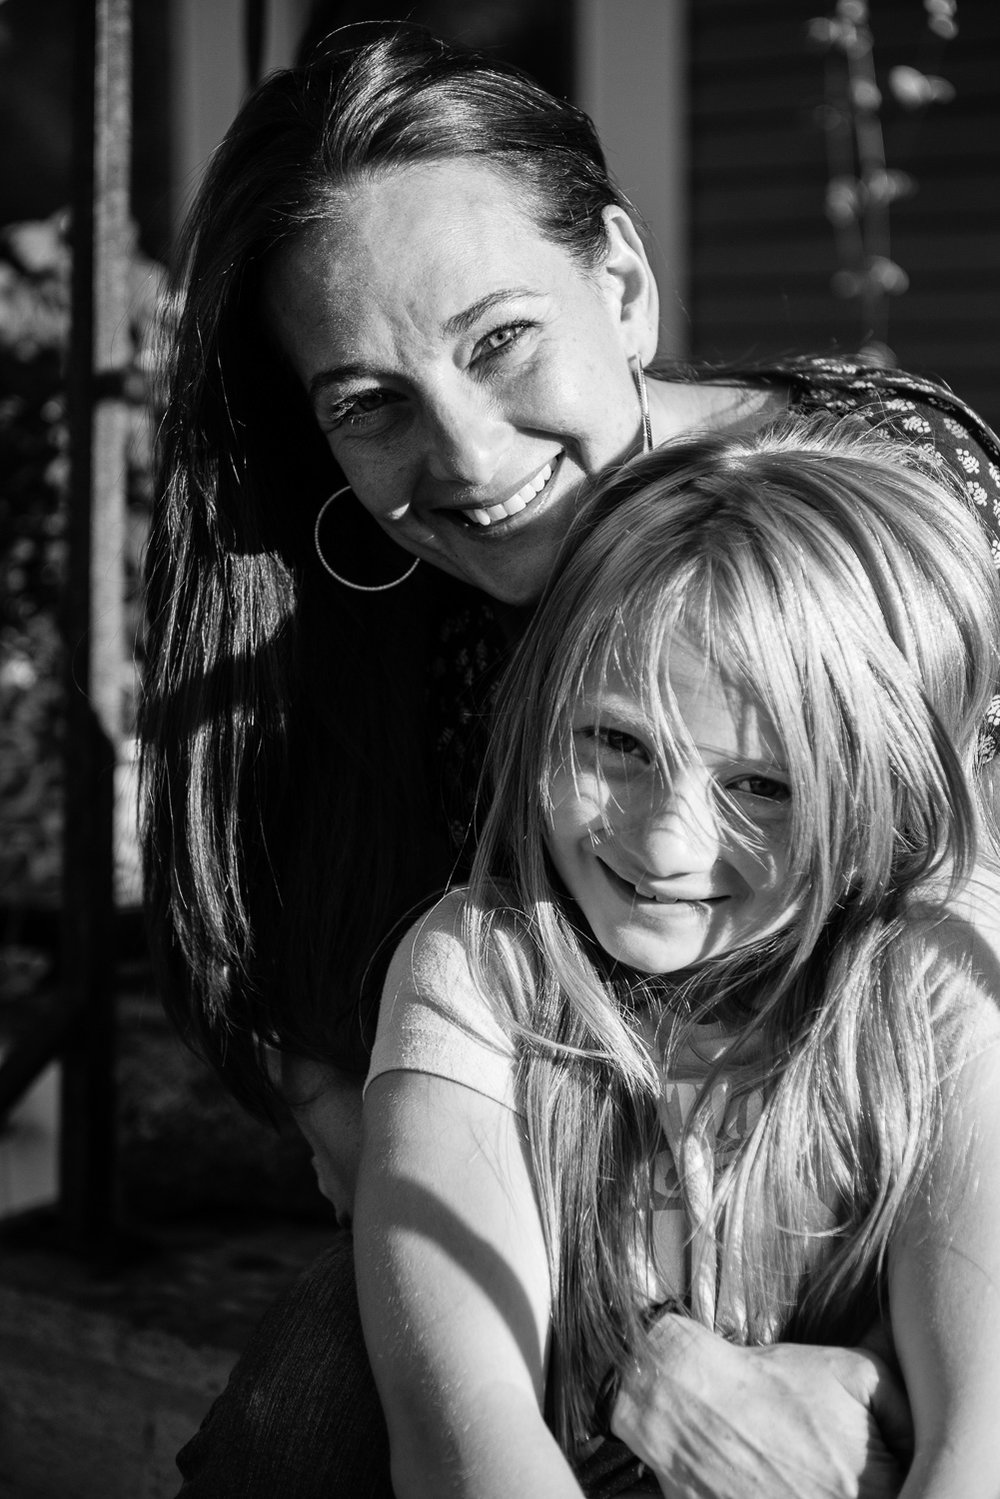 """Zoey is my miracle and saving grace,"" says Michelle about her youngest child, Zoey. ""I got an opportunity to do this different with her the whole way through and I'm committed to that. For me to think of me losing her or her not having a strong independent capable woman to show her how to do it consumes me with fear."""